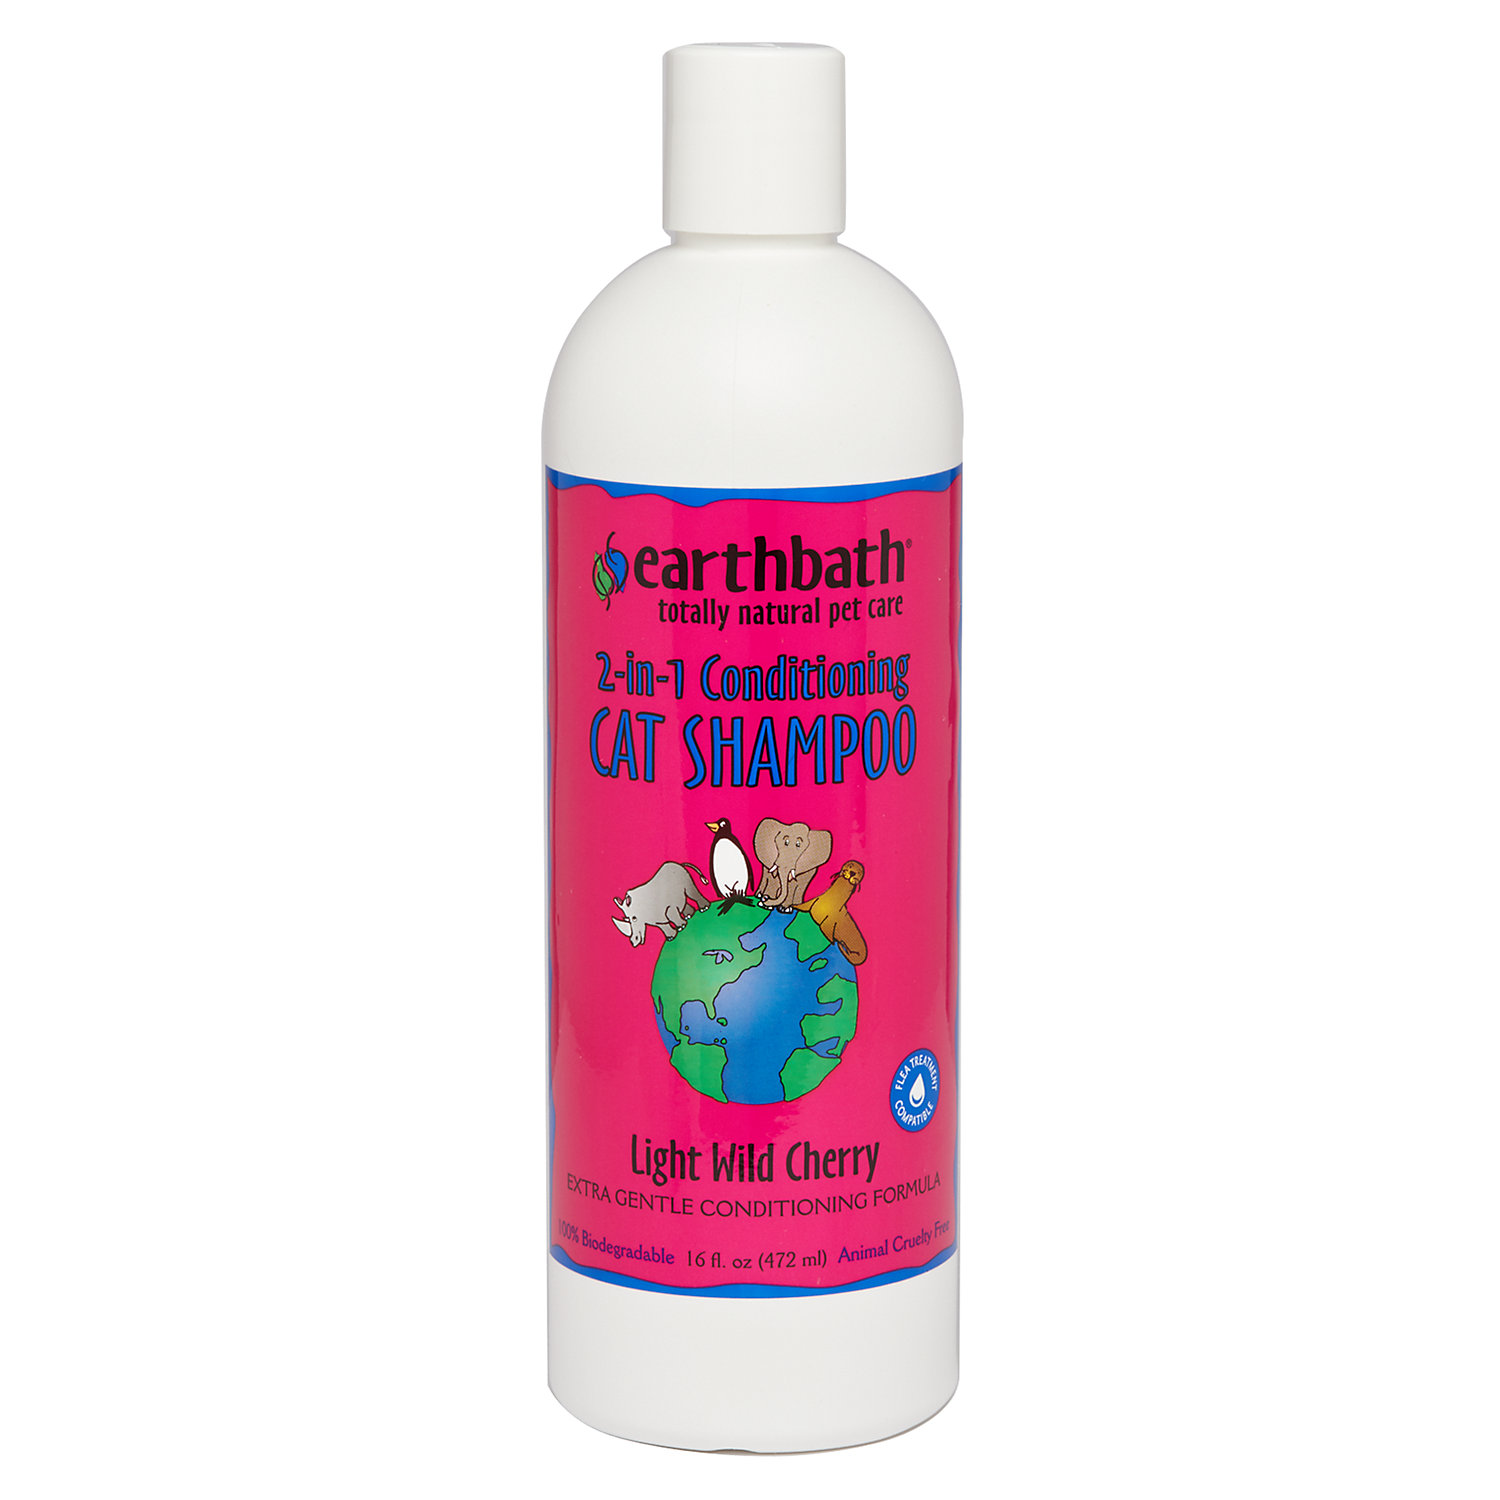 Earthbath Conditioning Formula With Aloe Vera Totally Natural Pet Shampoo 16 Fl. Oz.